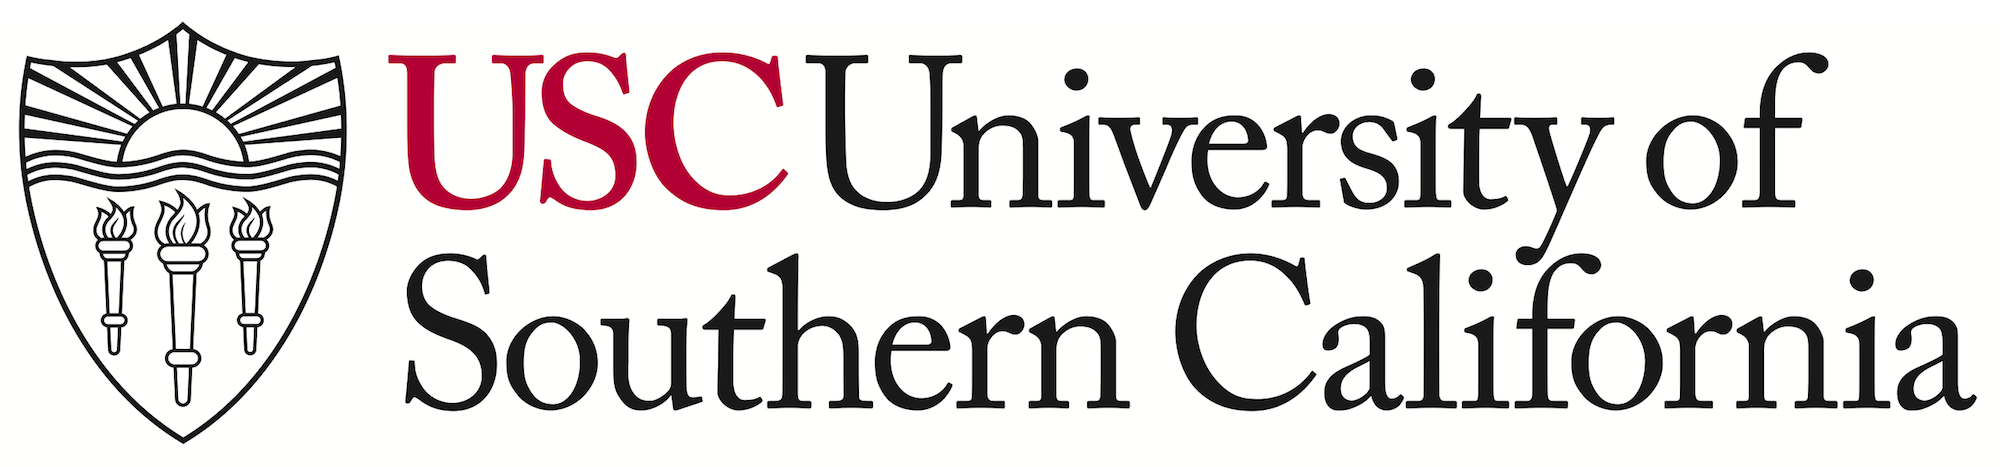 Cryogen-free 7T simultaneous PET-MR preclinical imaging system at the Keck  School of Medicine of the University of Southern California. USC Logo - Usc PNG Free